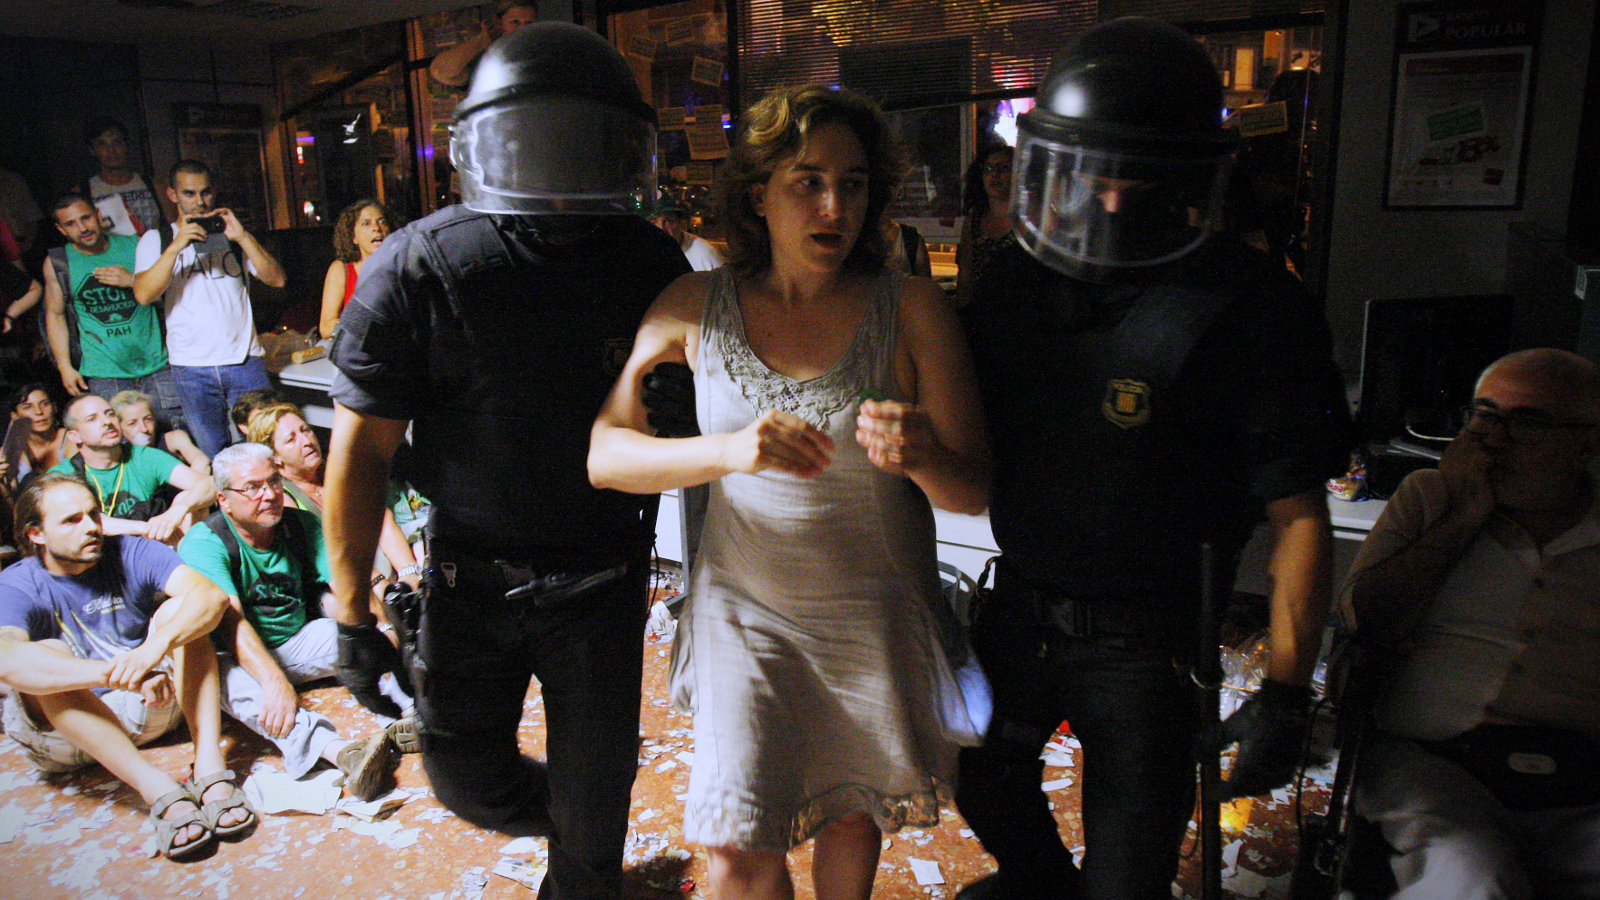 Ada Colau, new mayor of Barcelona, is carried out by riot police officers after occupying a bank in 2013